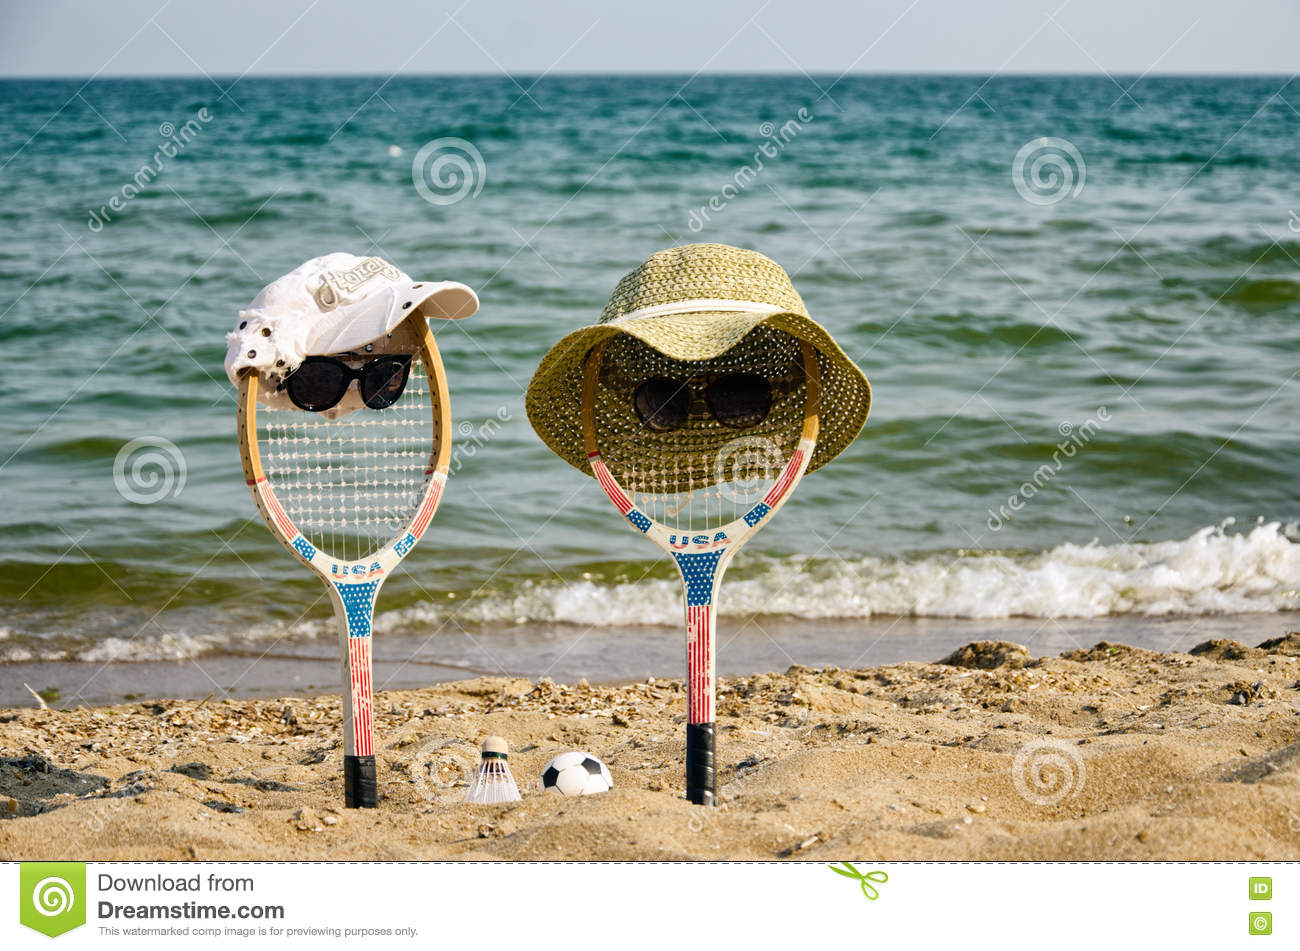 Two rackets (boy&girl) rest on the beach